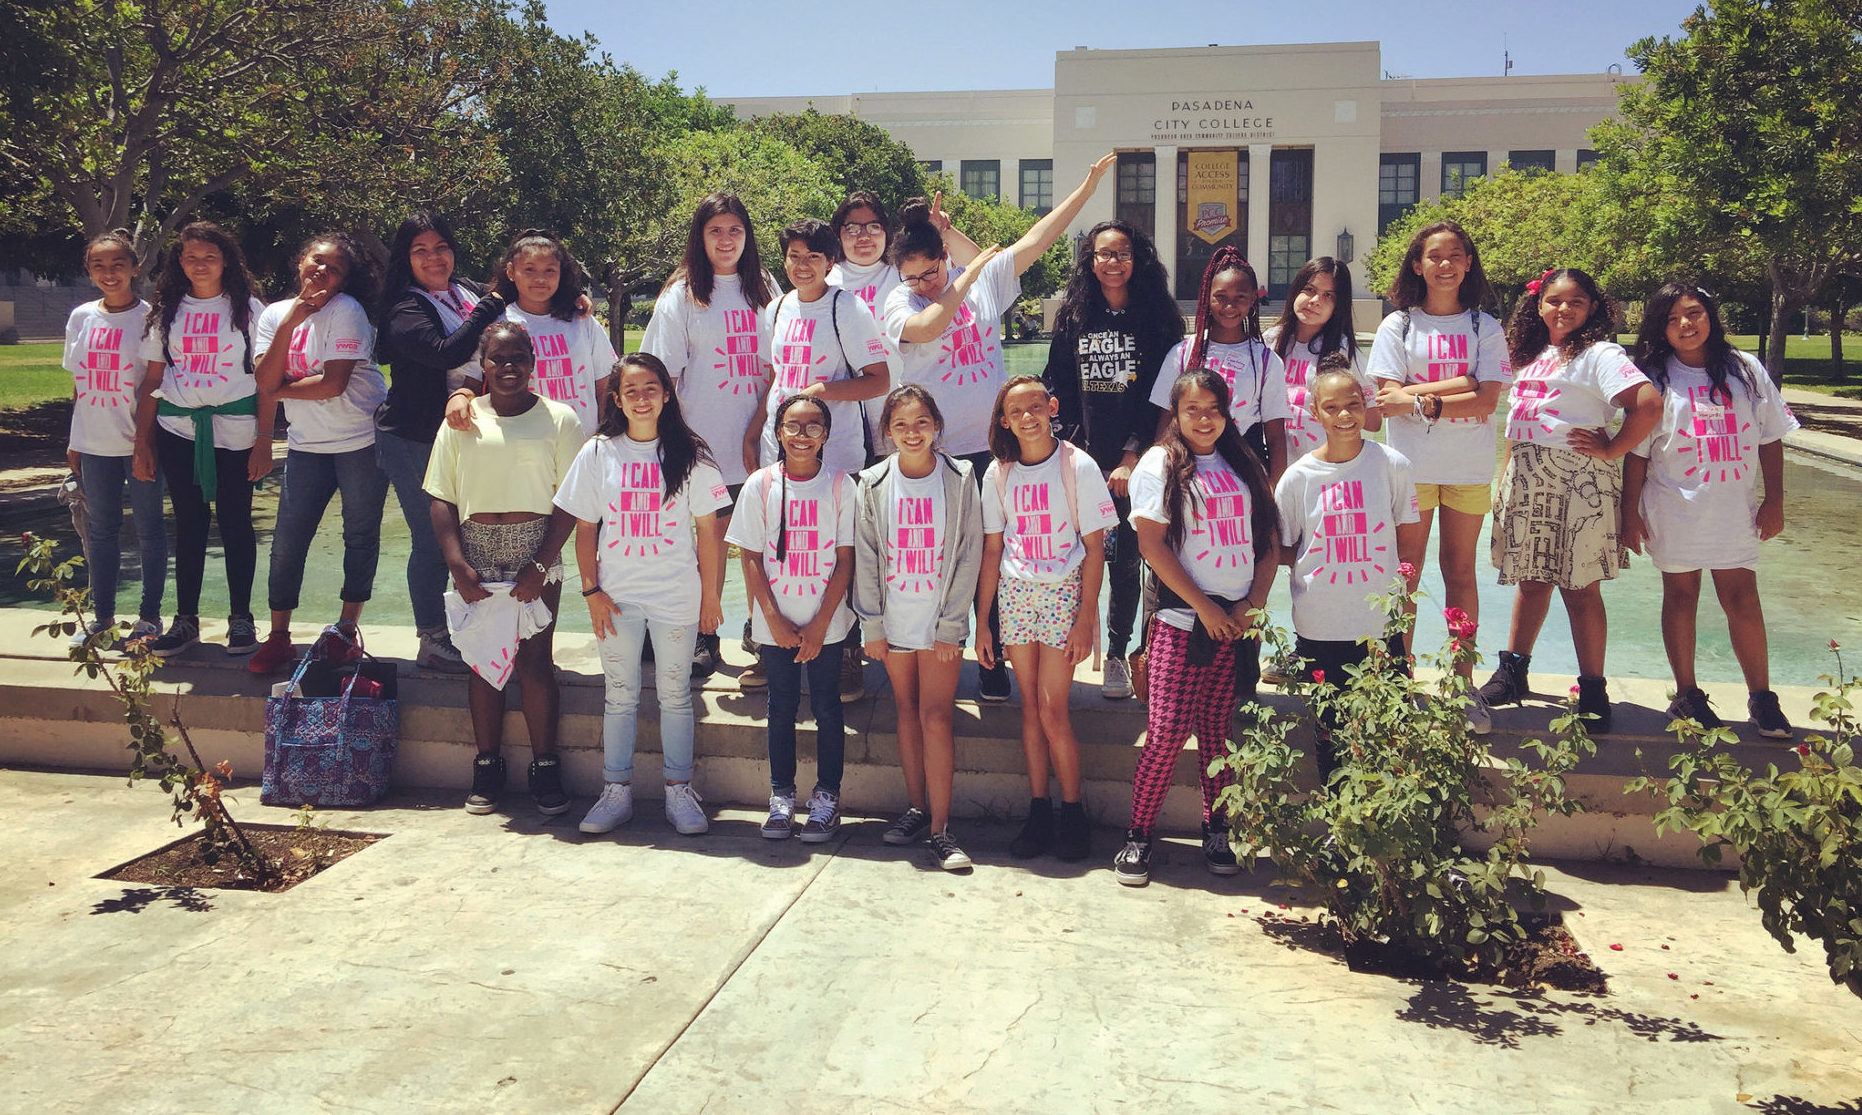 Group of Girls from Girls Rise Leadership Camp in front of Pasadena City College